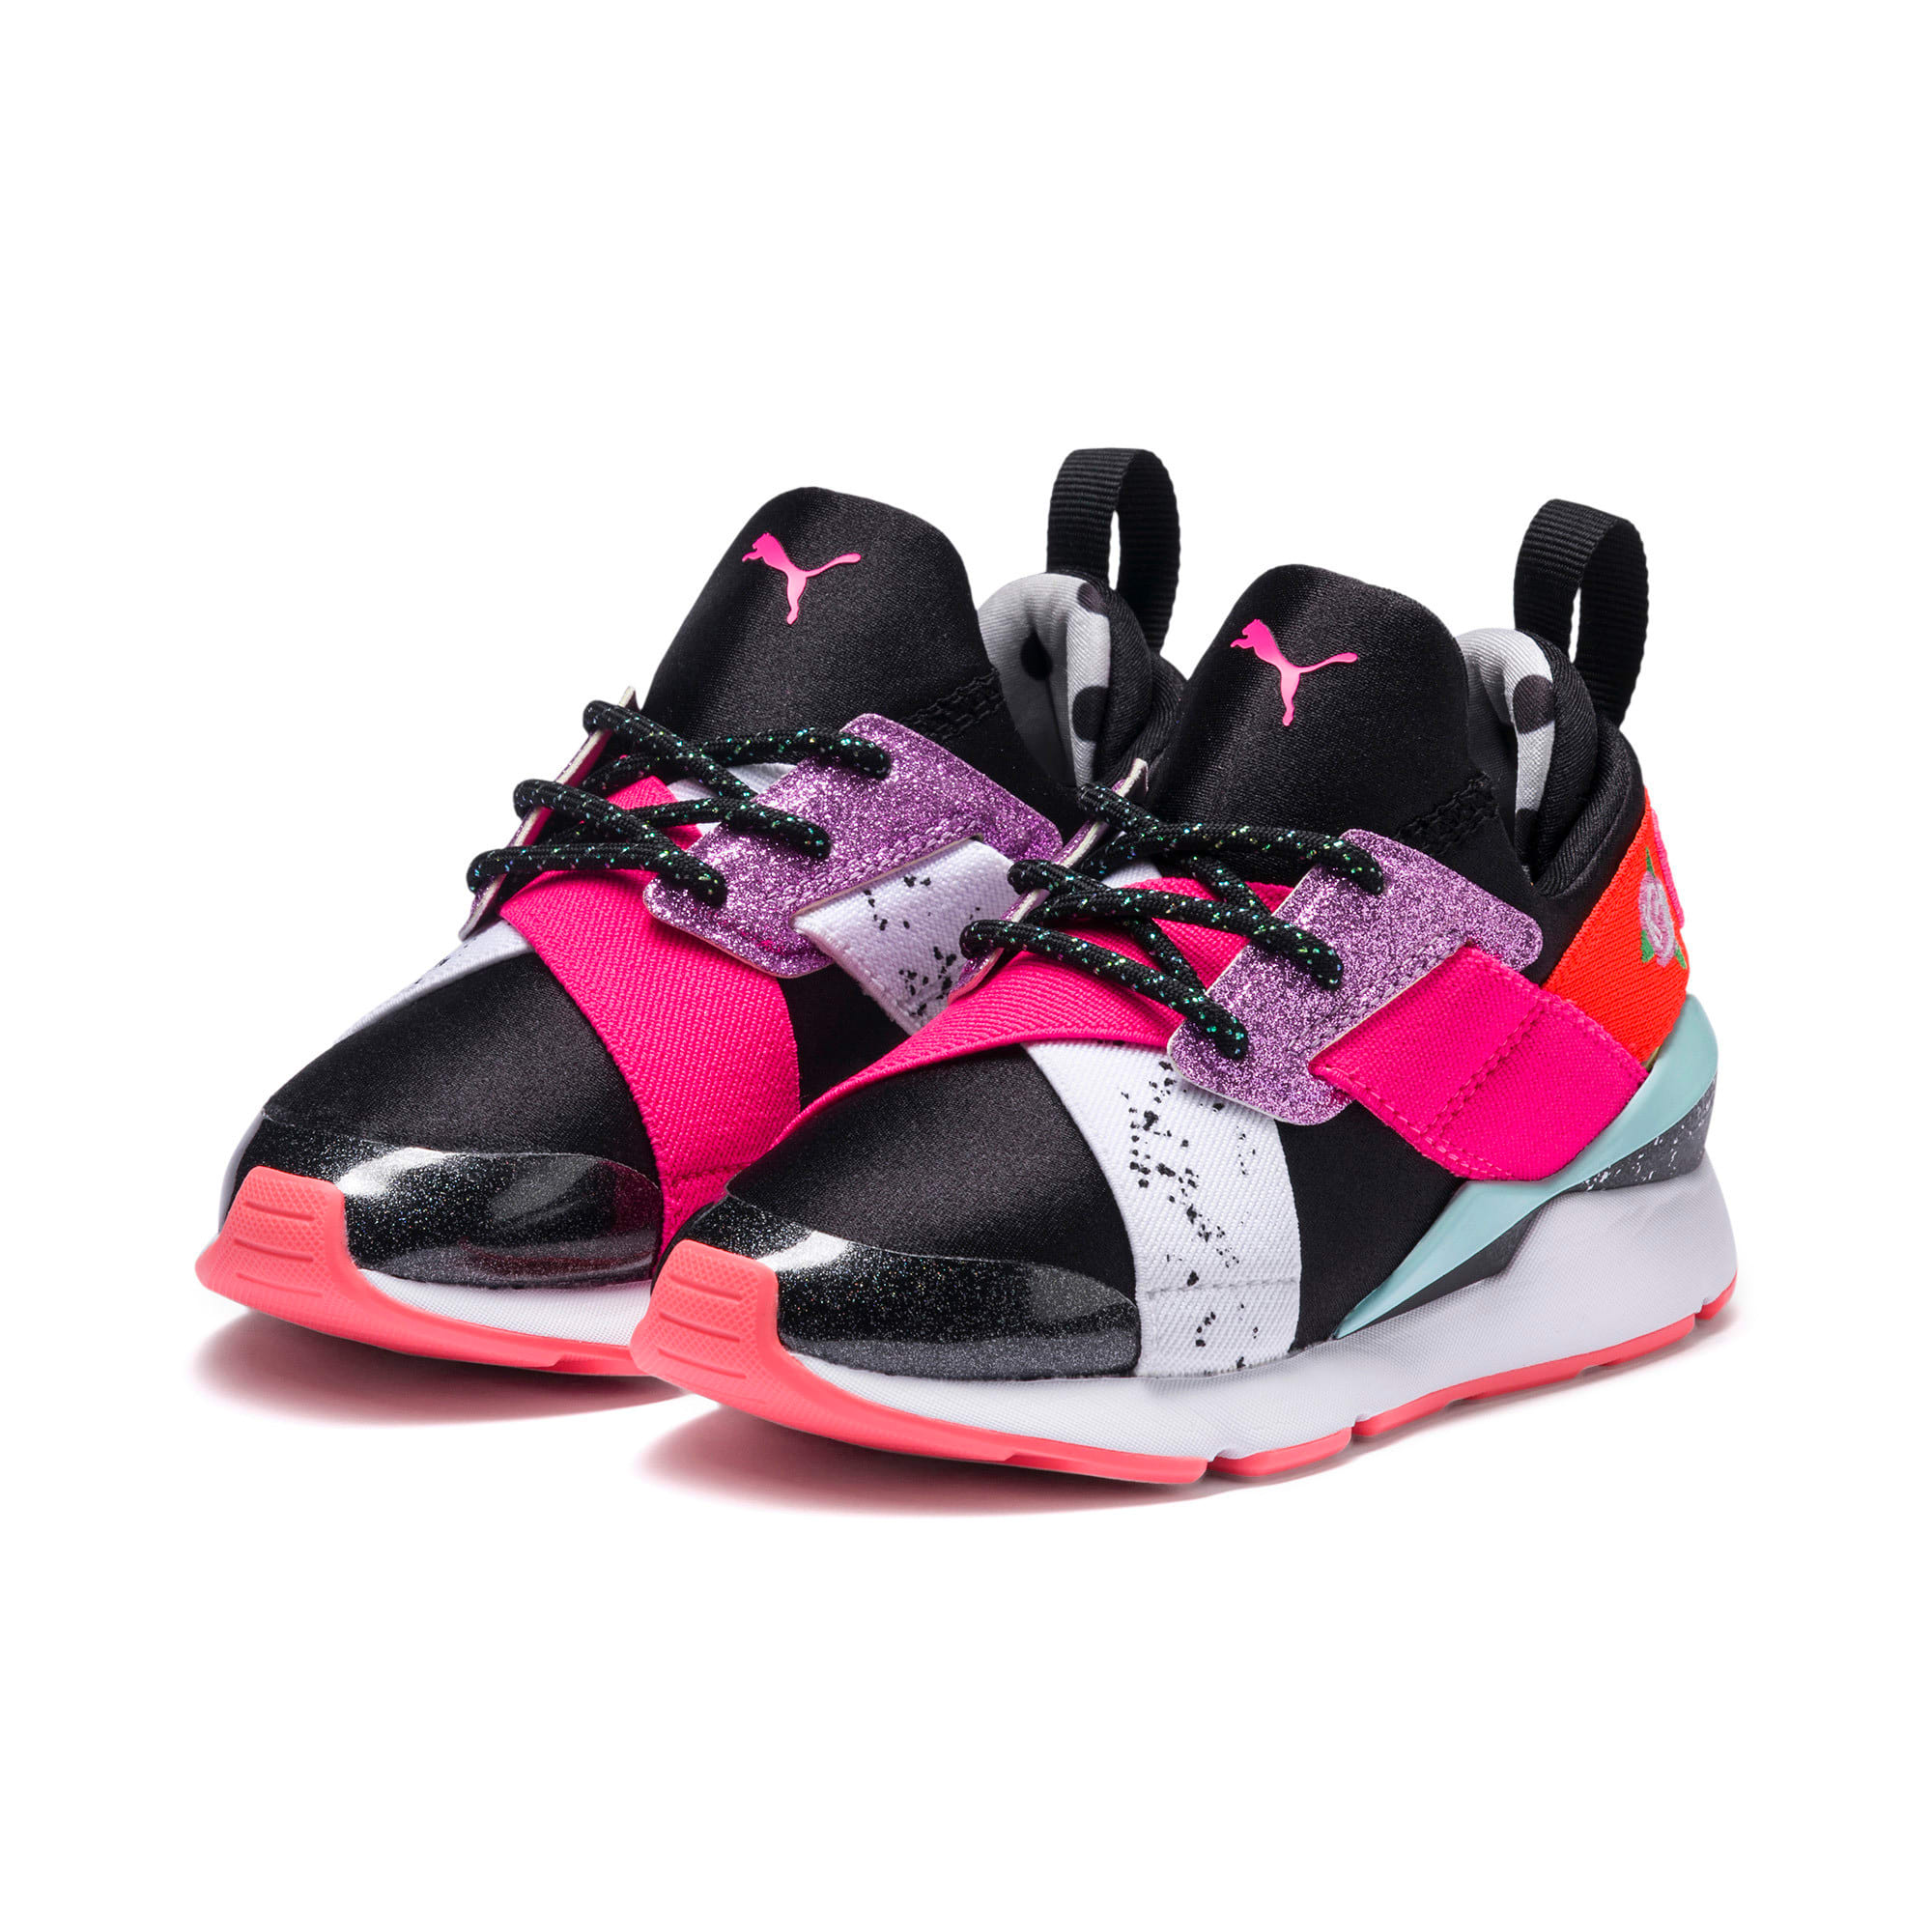 Thumbnail 5 of PUMA x SOPHIA WEBSTER Muse Little Kids' Shoes, Puma Black-Puma White, medium